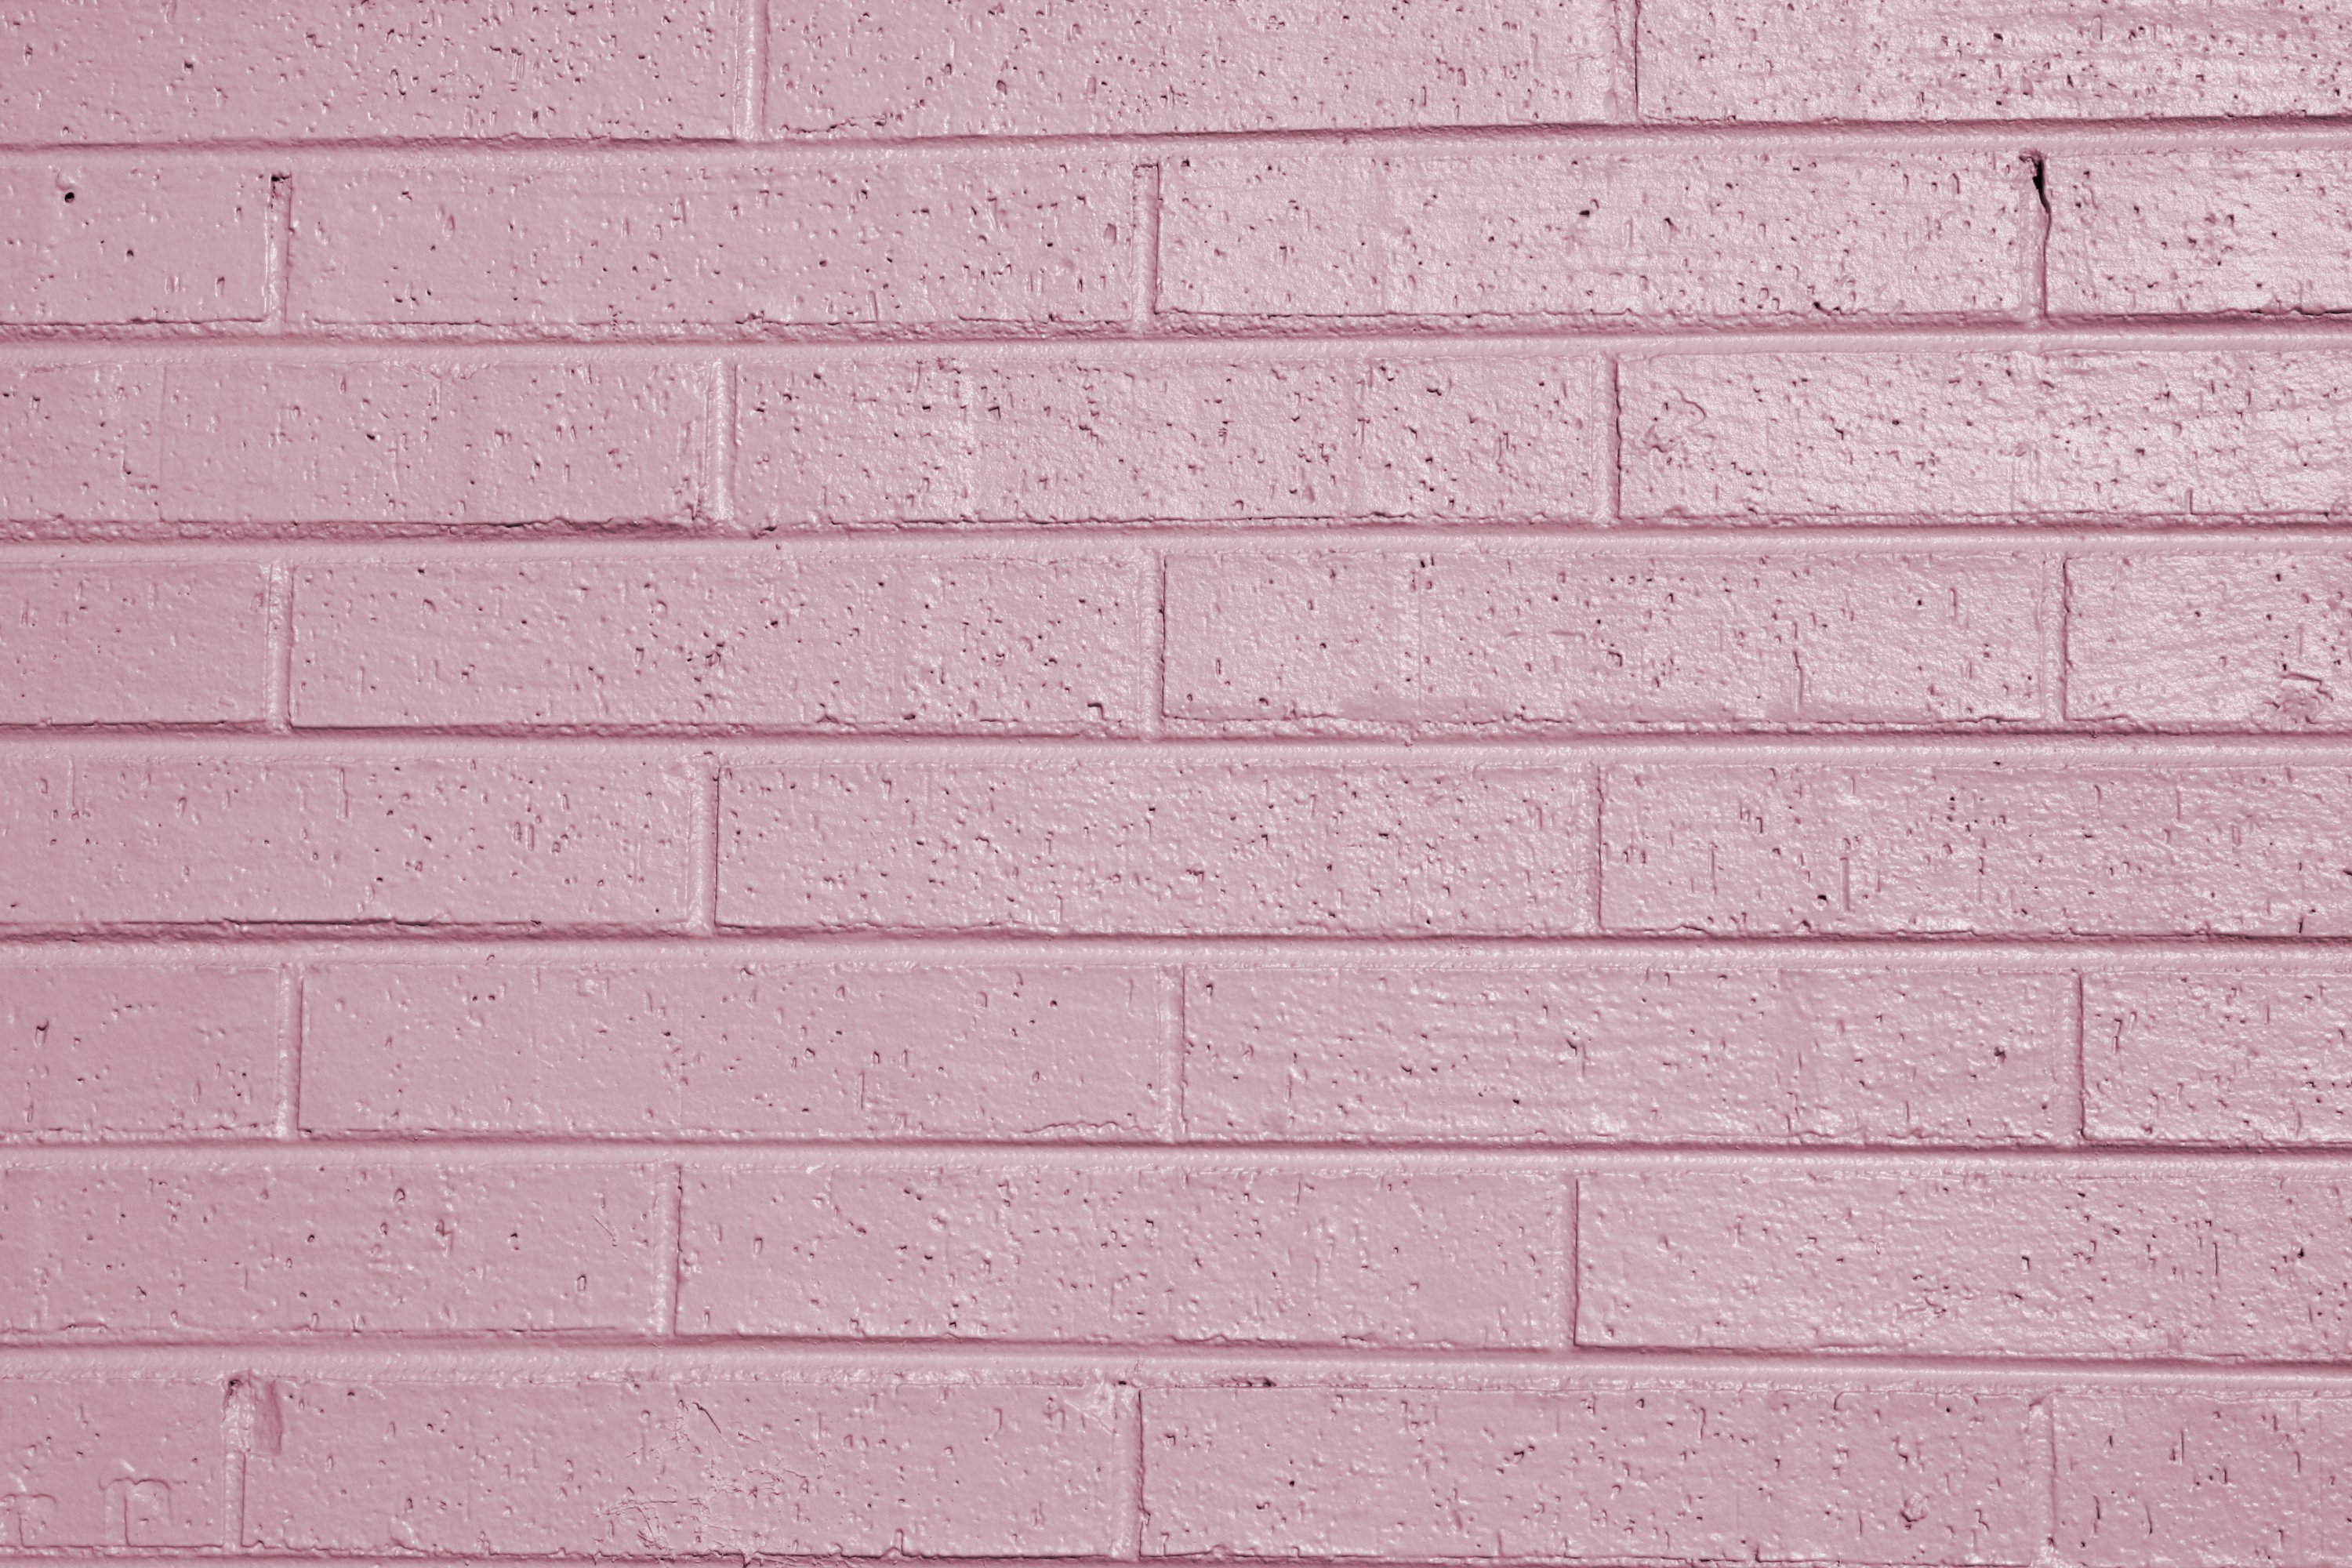 Mauve Painted Brick Wall Texture Picture Free Photograph Photos